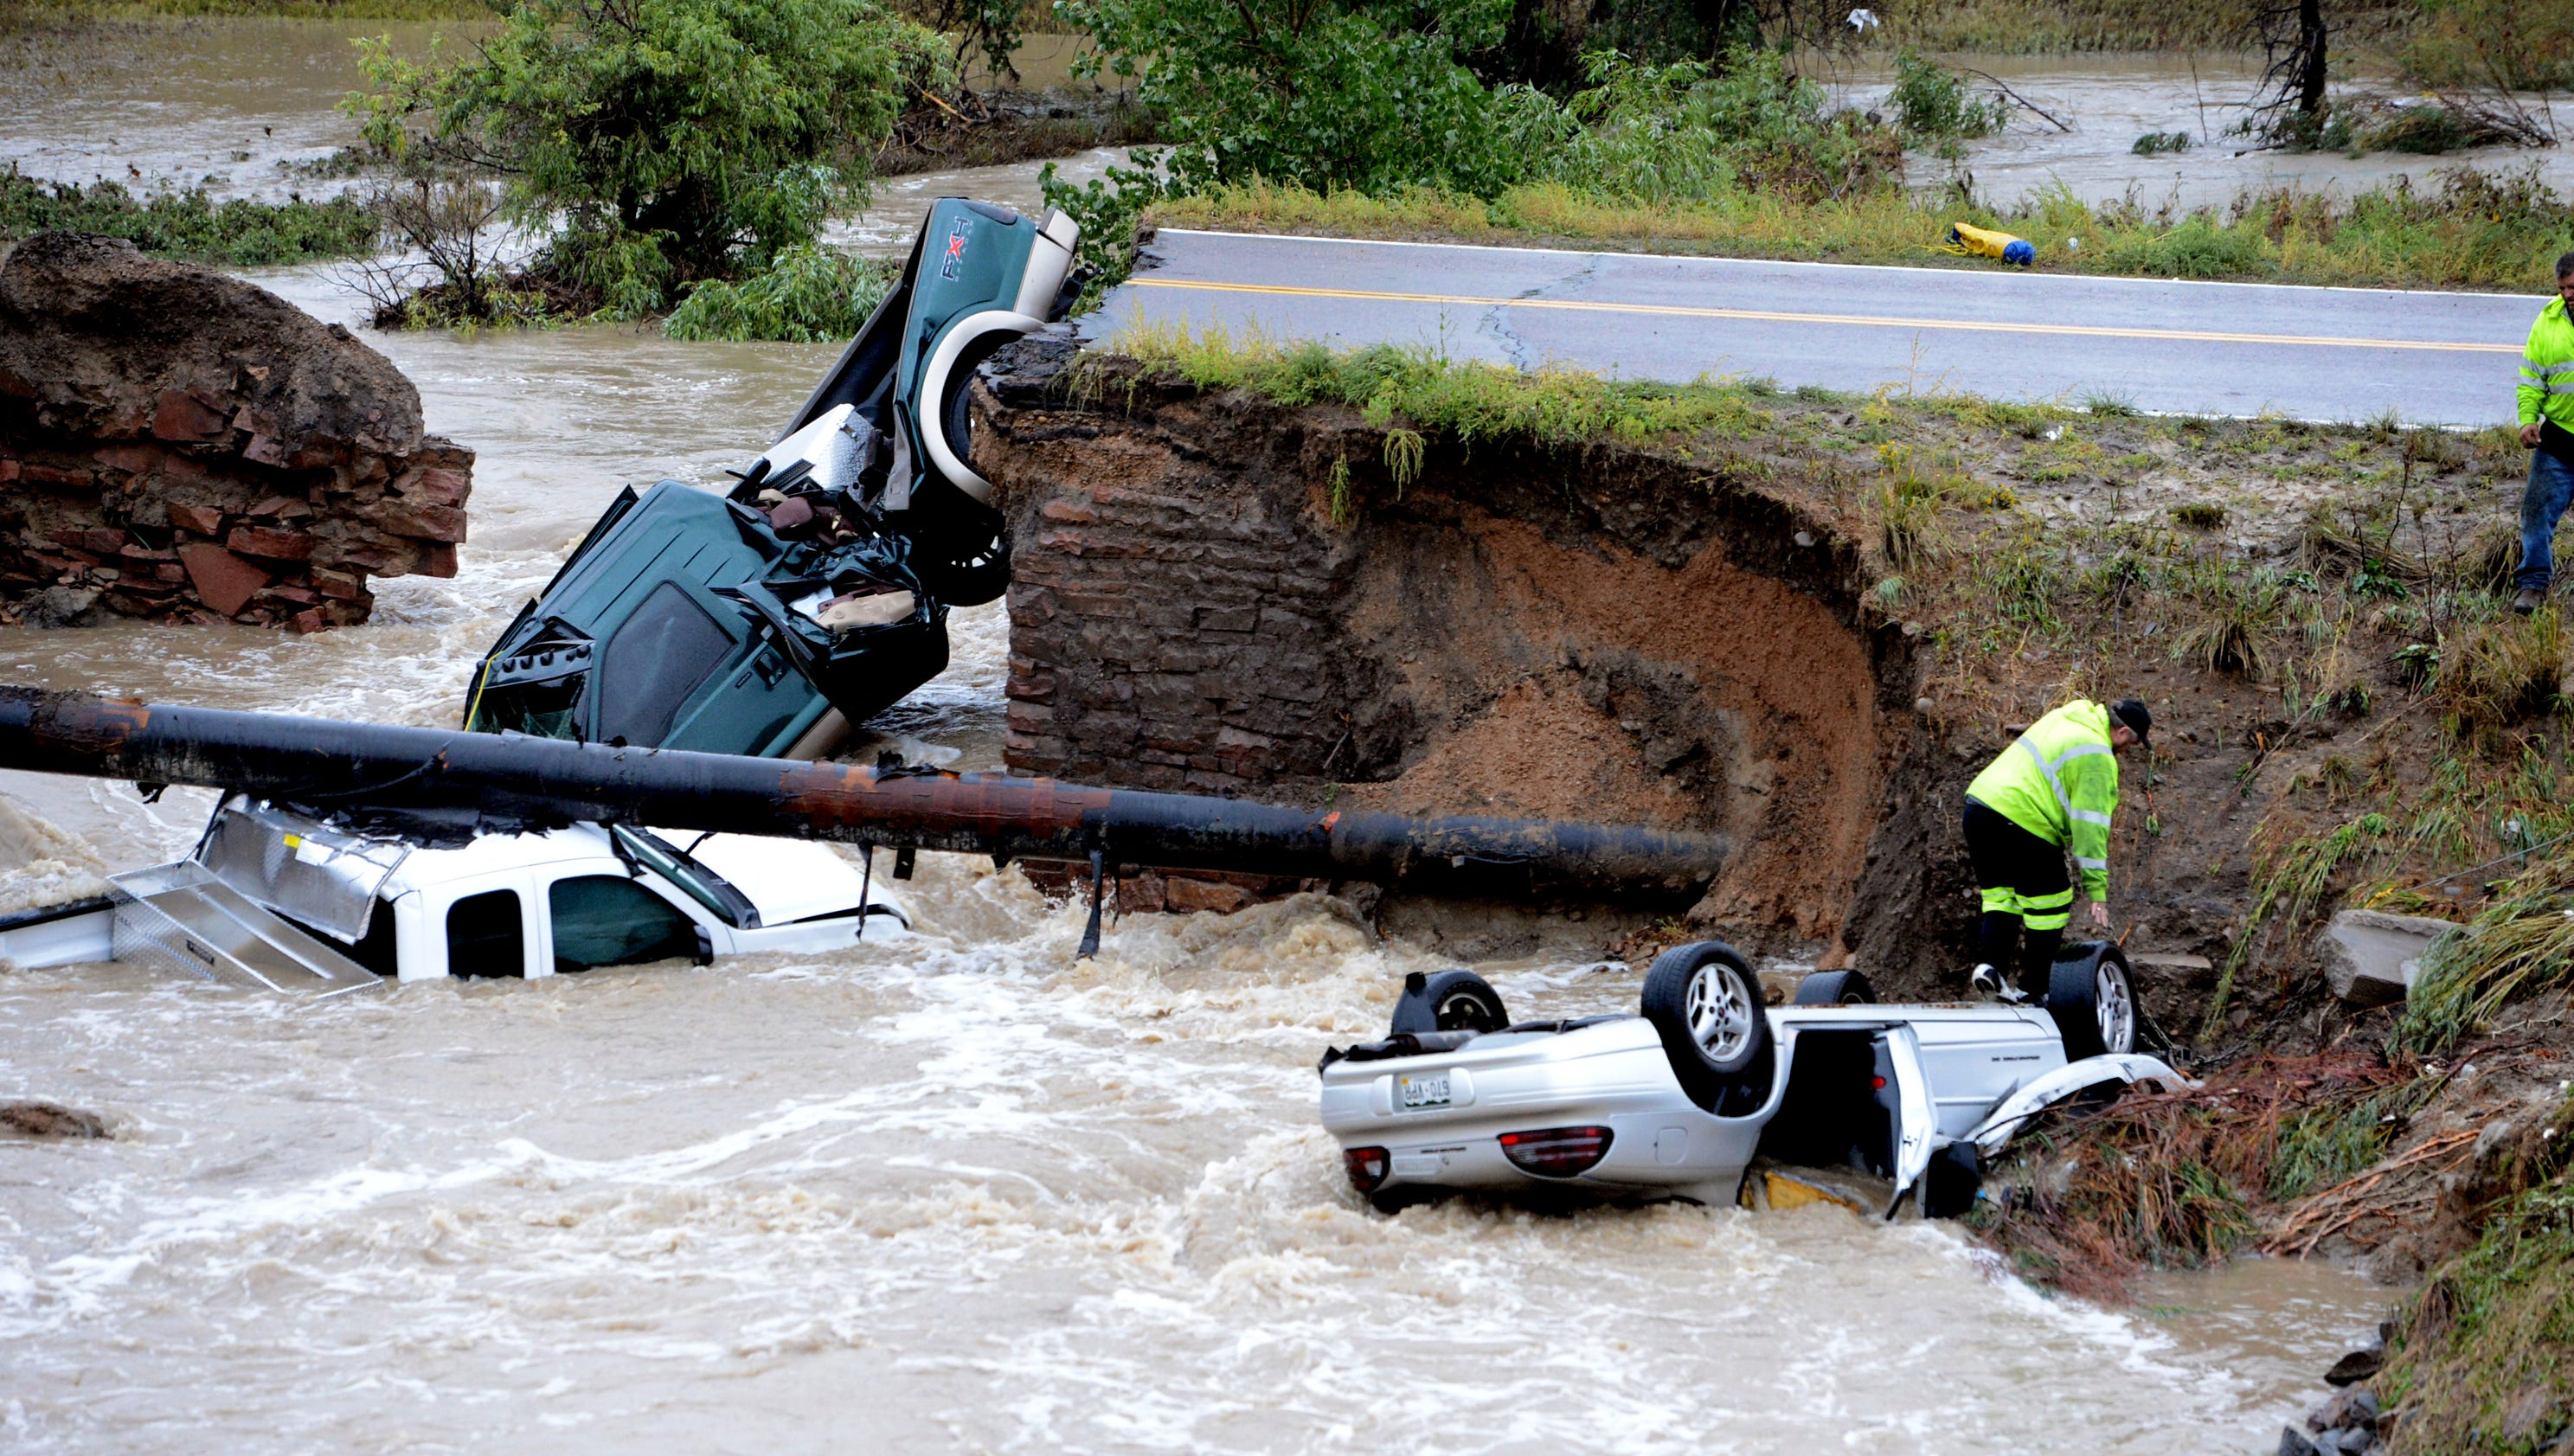 Report: Colorado flooding was 'unprecedented'